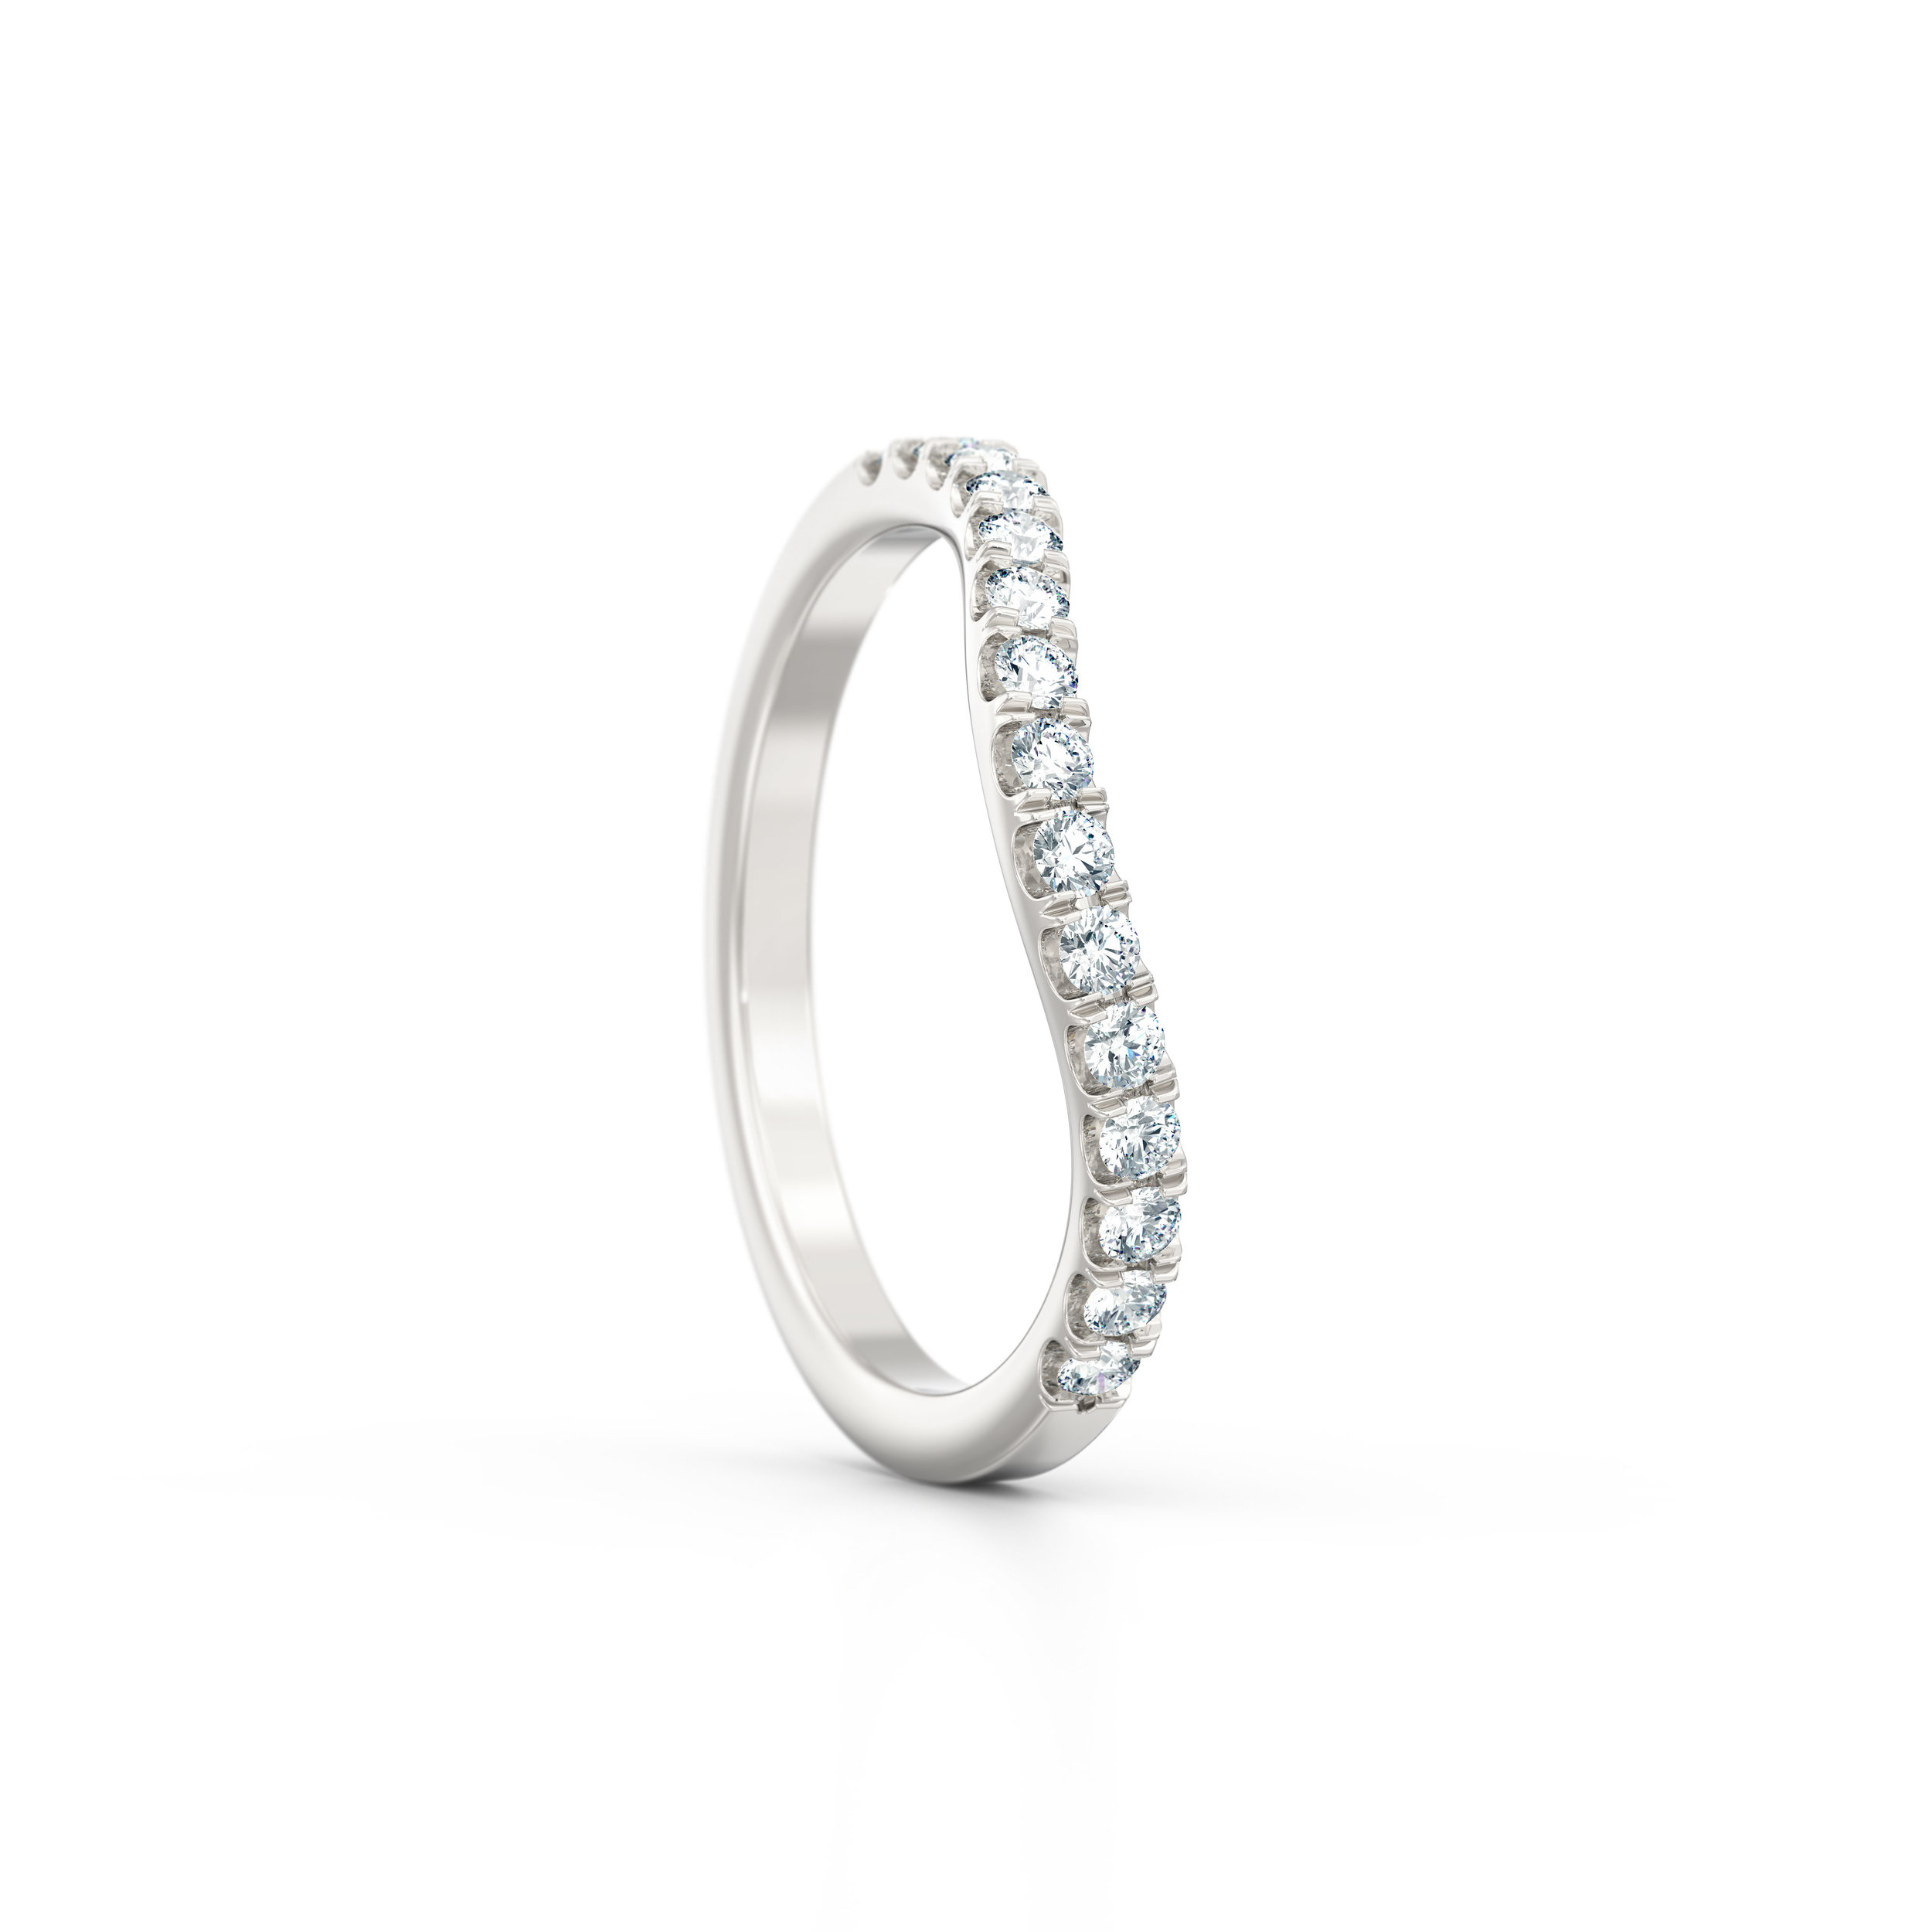 Diamond wishbone shaped wedding band | Hatton Garden